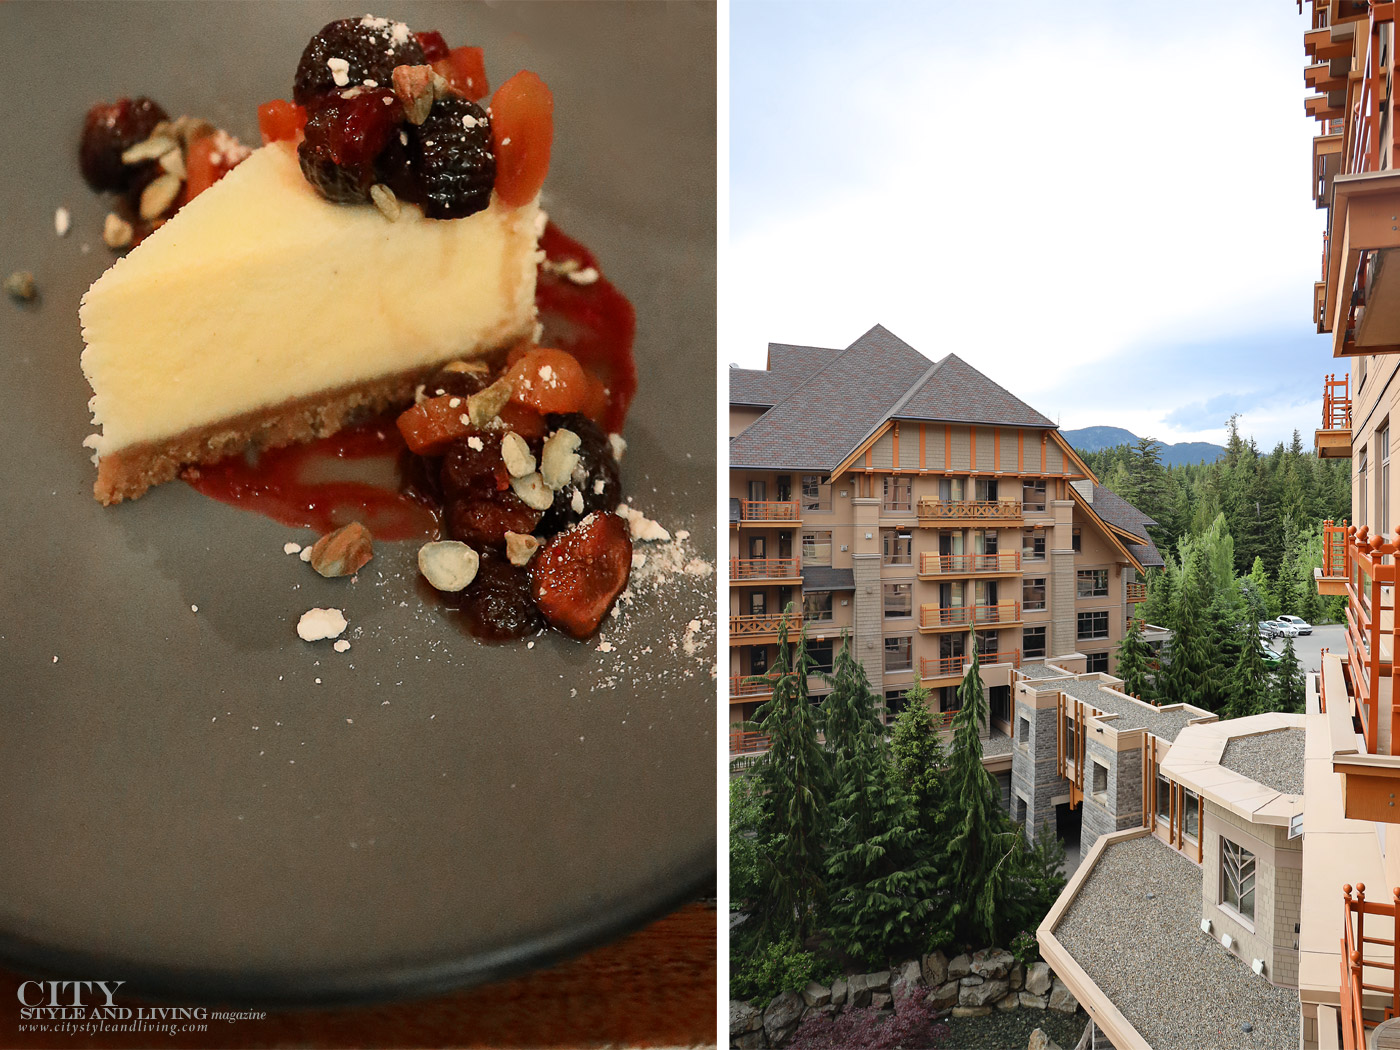 City Style and Living Magazine Summer 2019 Porsche Experience Whistler Cayenne S  Four Seasons Whistler dinner and exterior